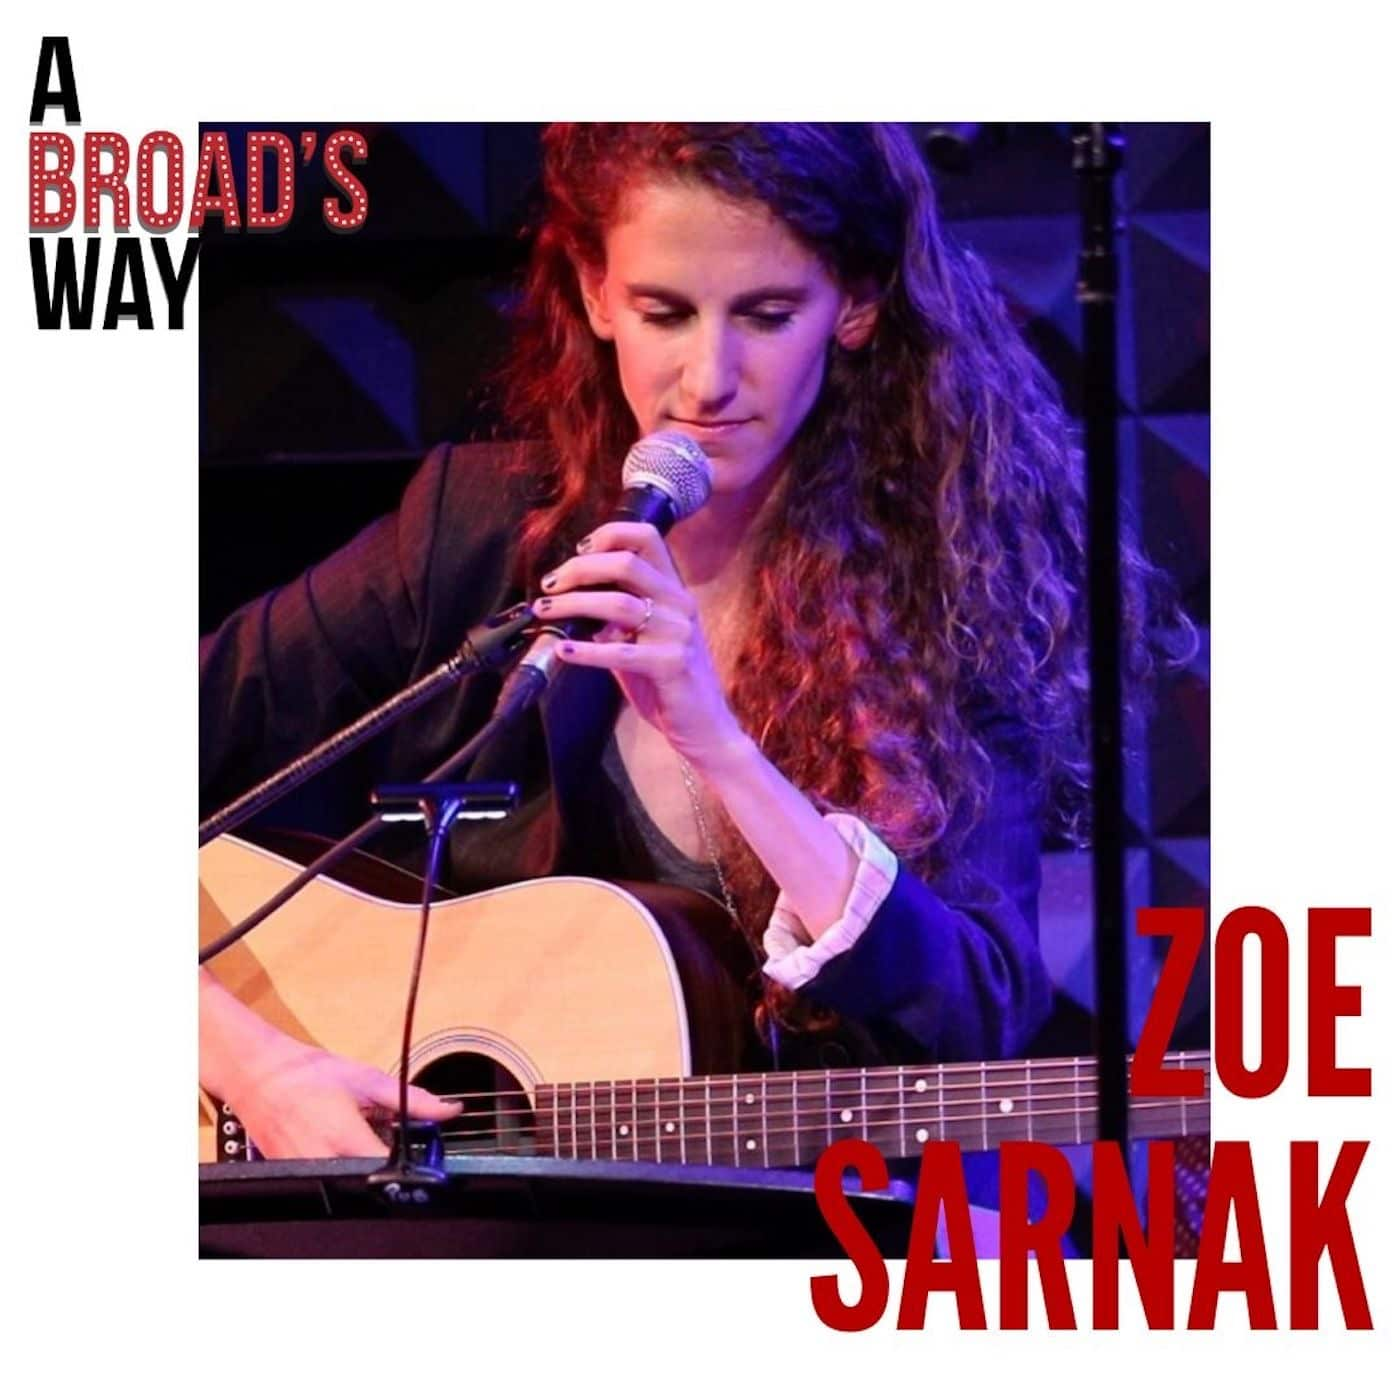 A Broad's Way Episode 10 Zoe Sarnak